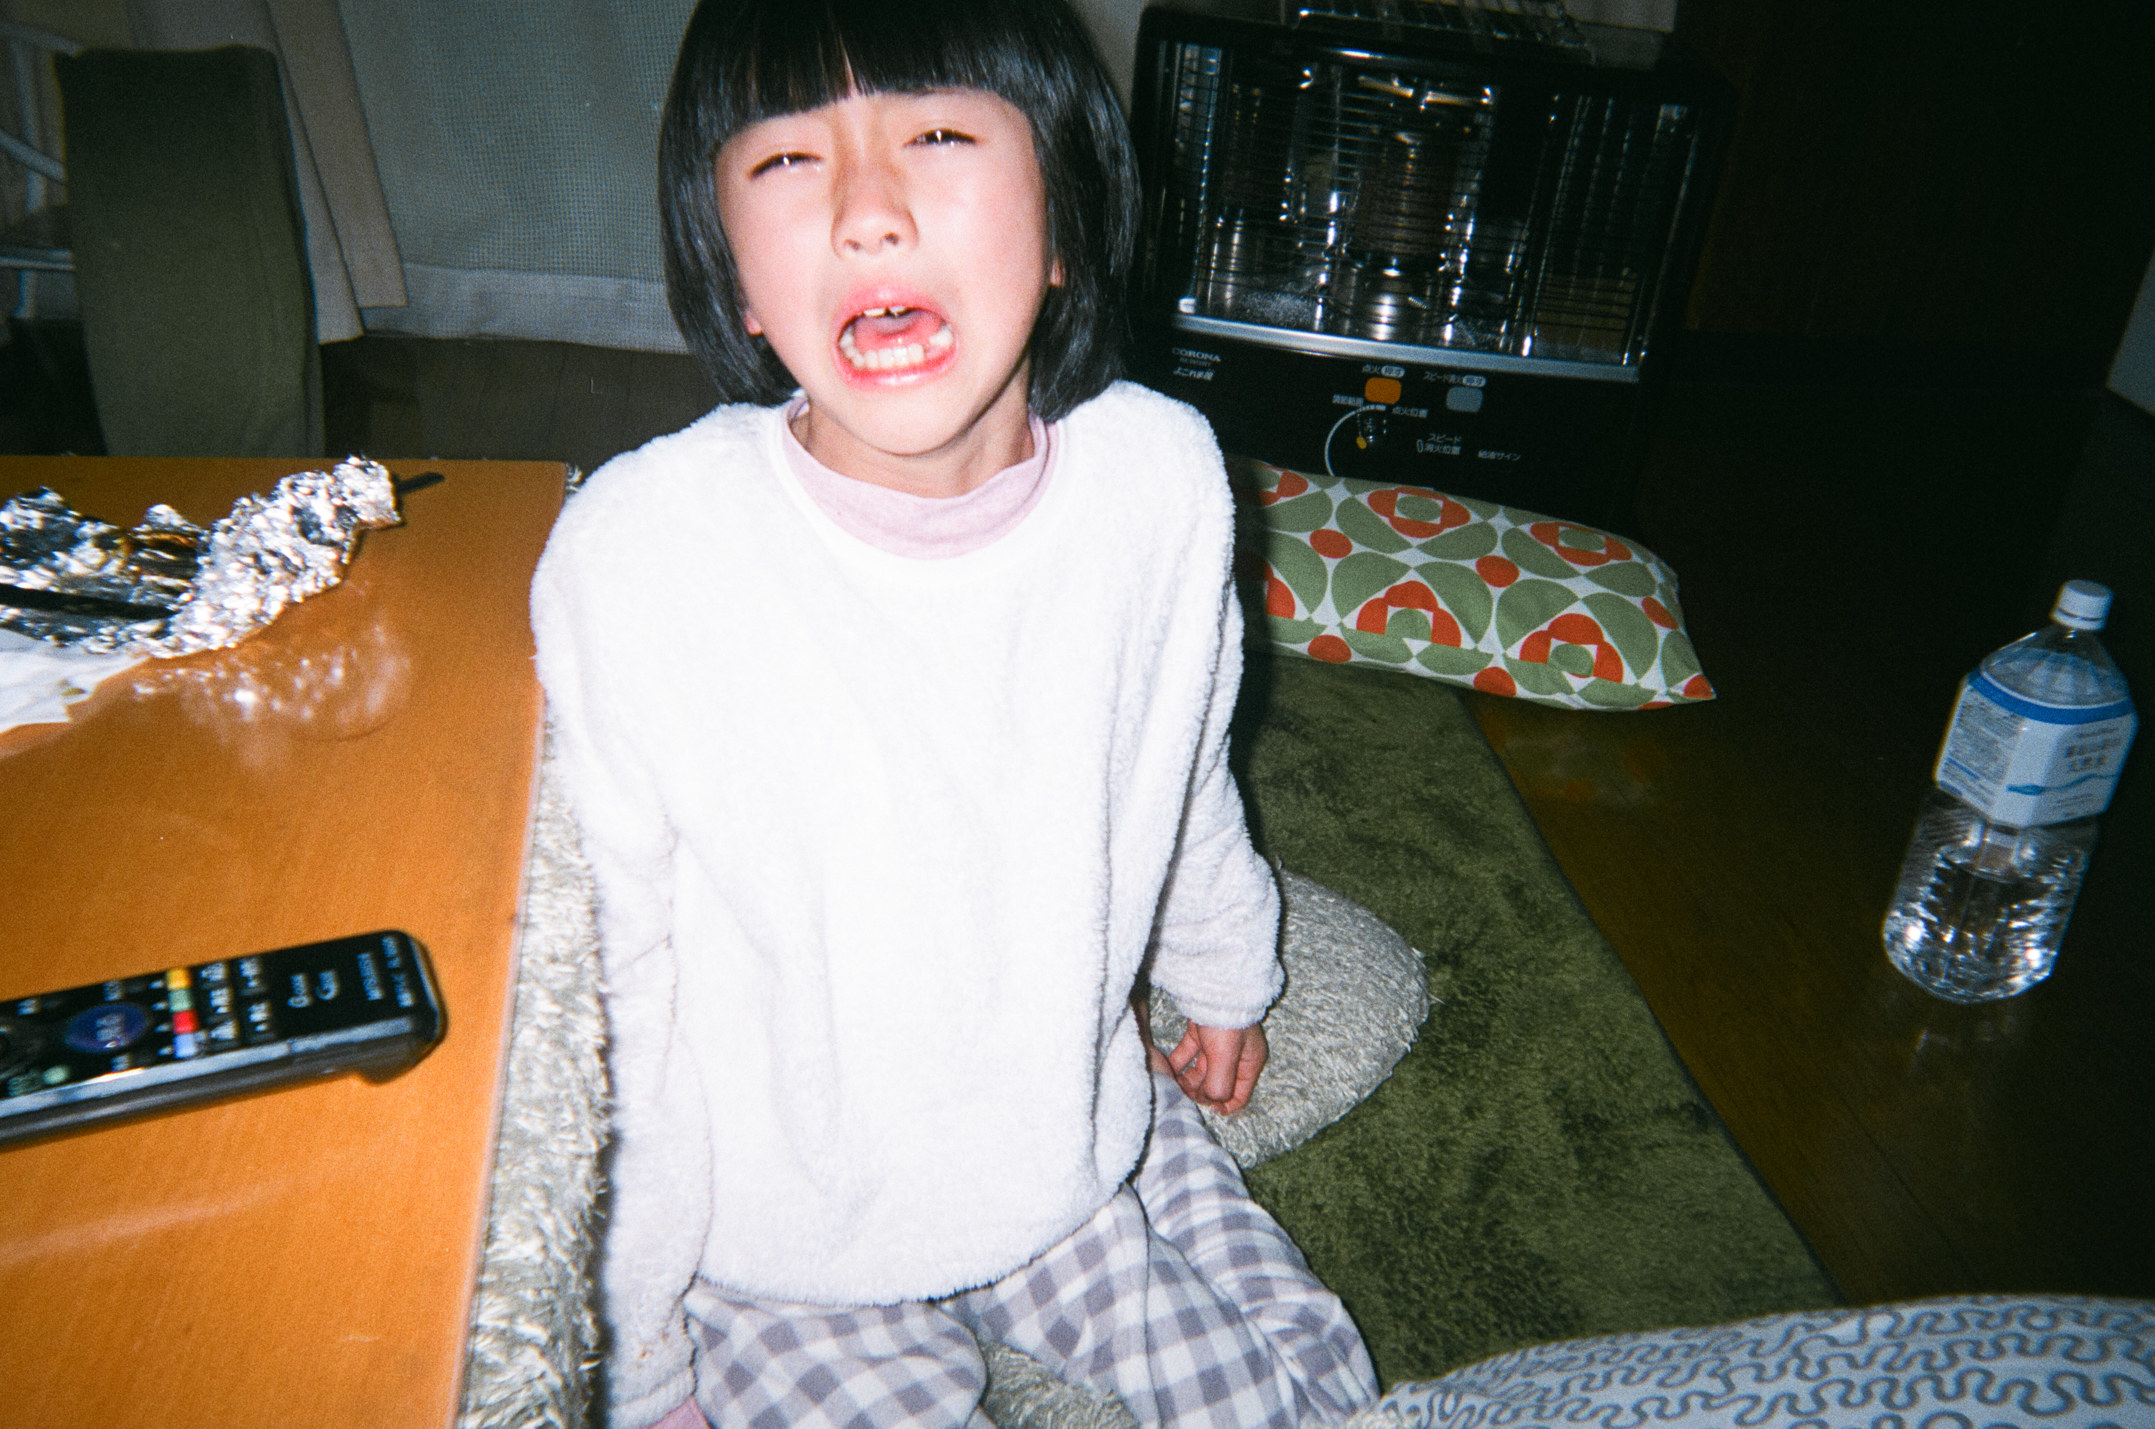 The photographer's daughter crying in their living room